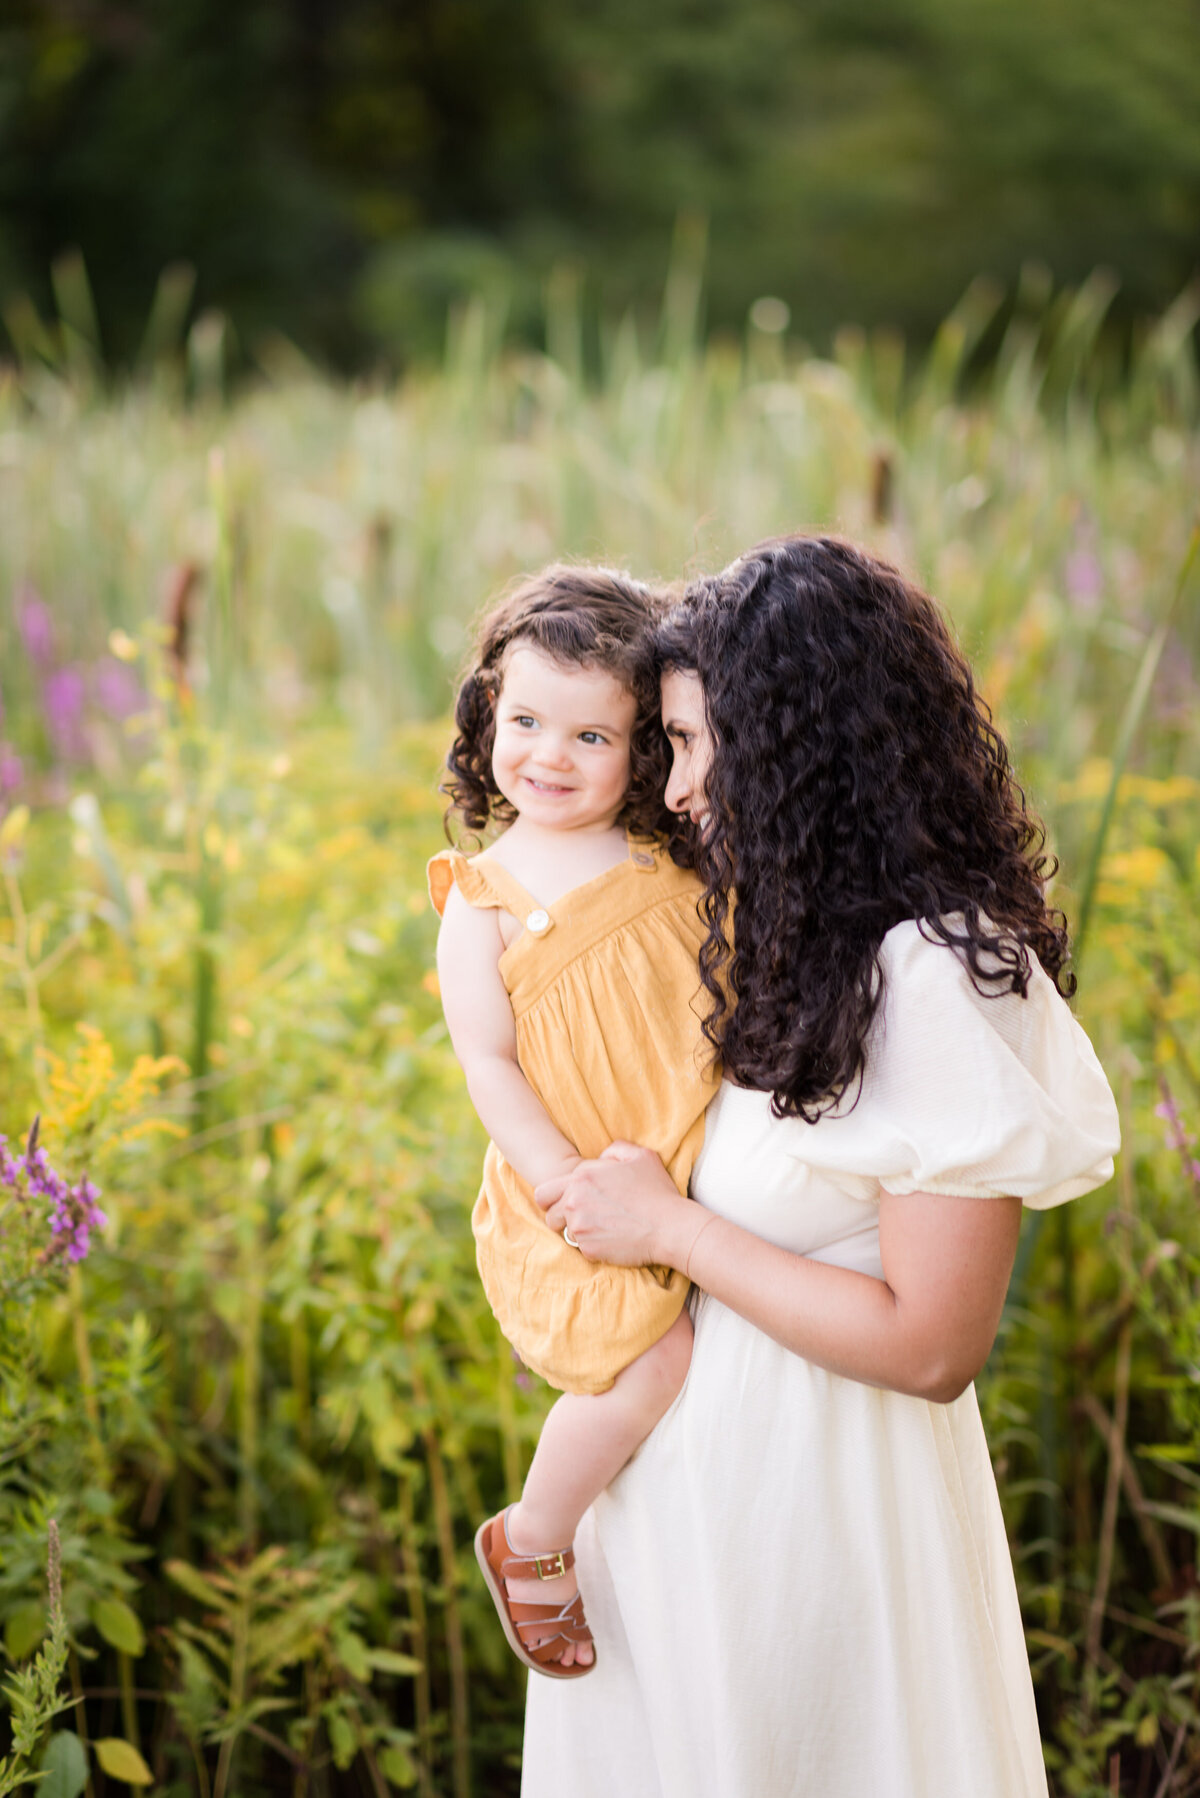 Boston-family-photographer-bella-wang-photography-Lifestyle-session-outdoor-wildflower-50